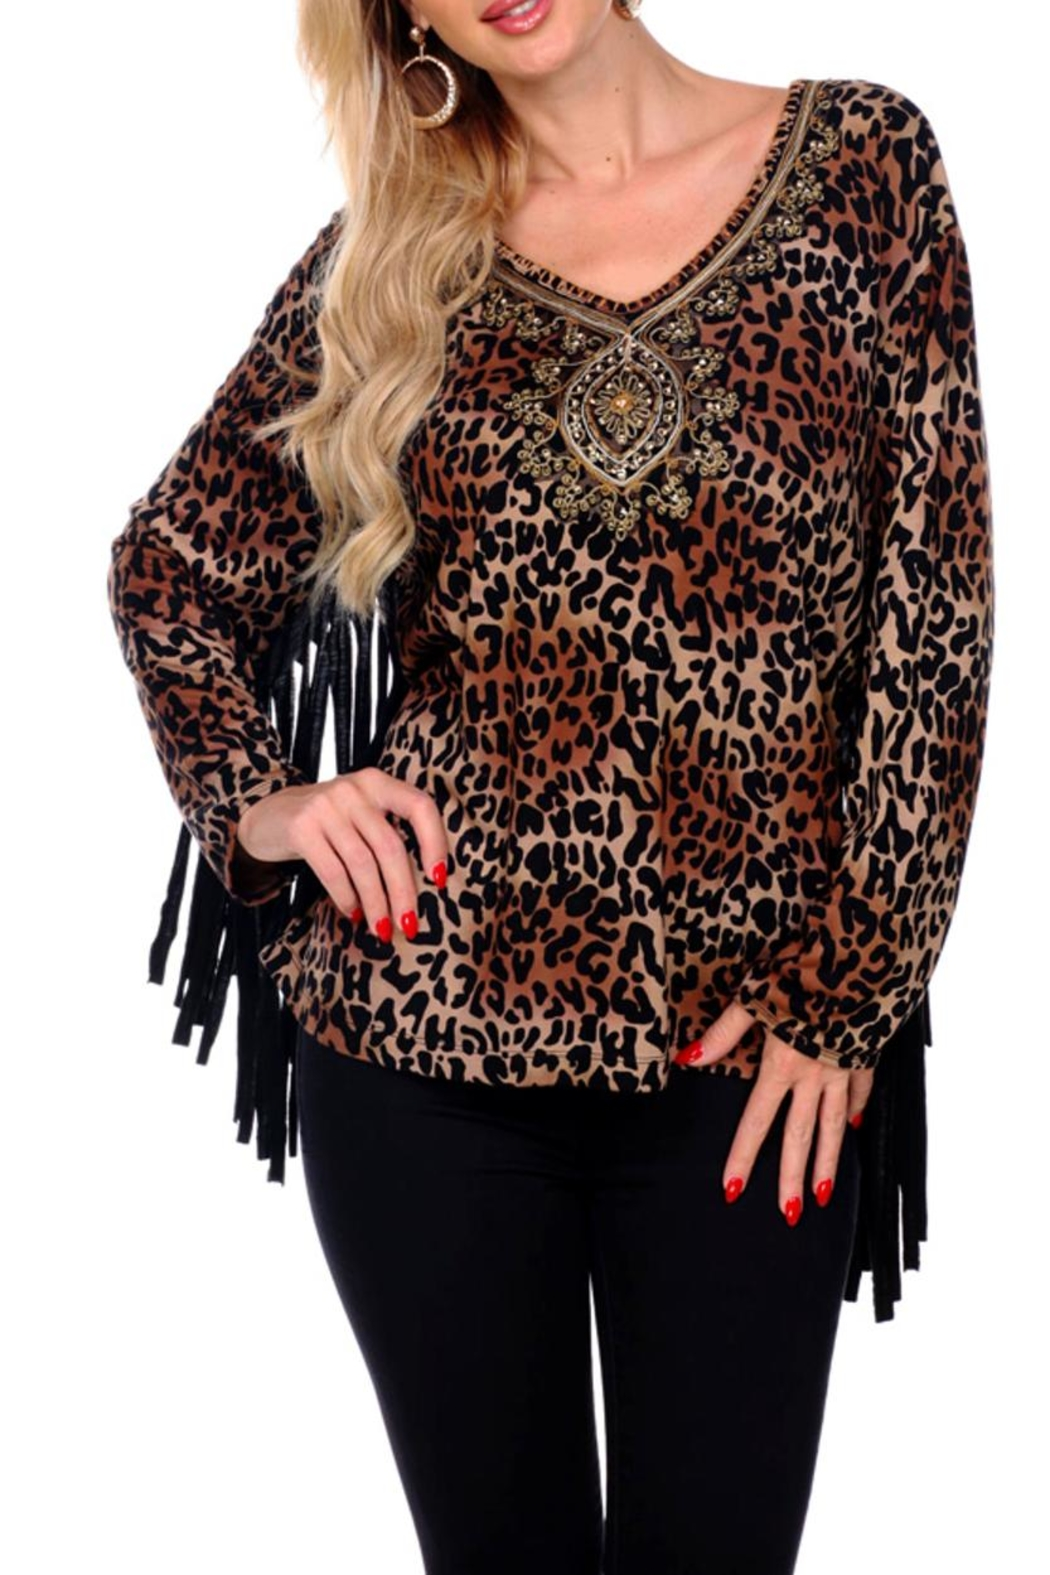 Krista Lee Leopard Fringe Top - Main Image